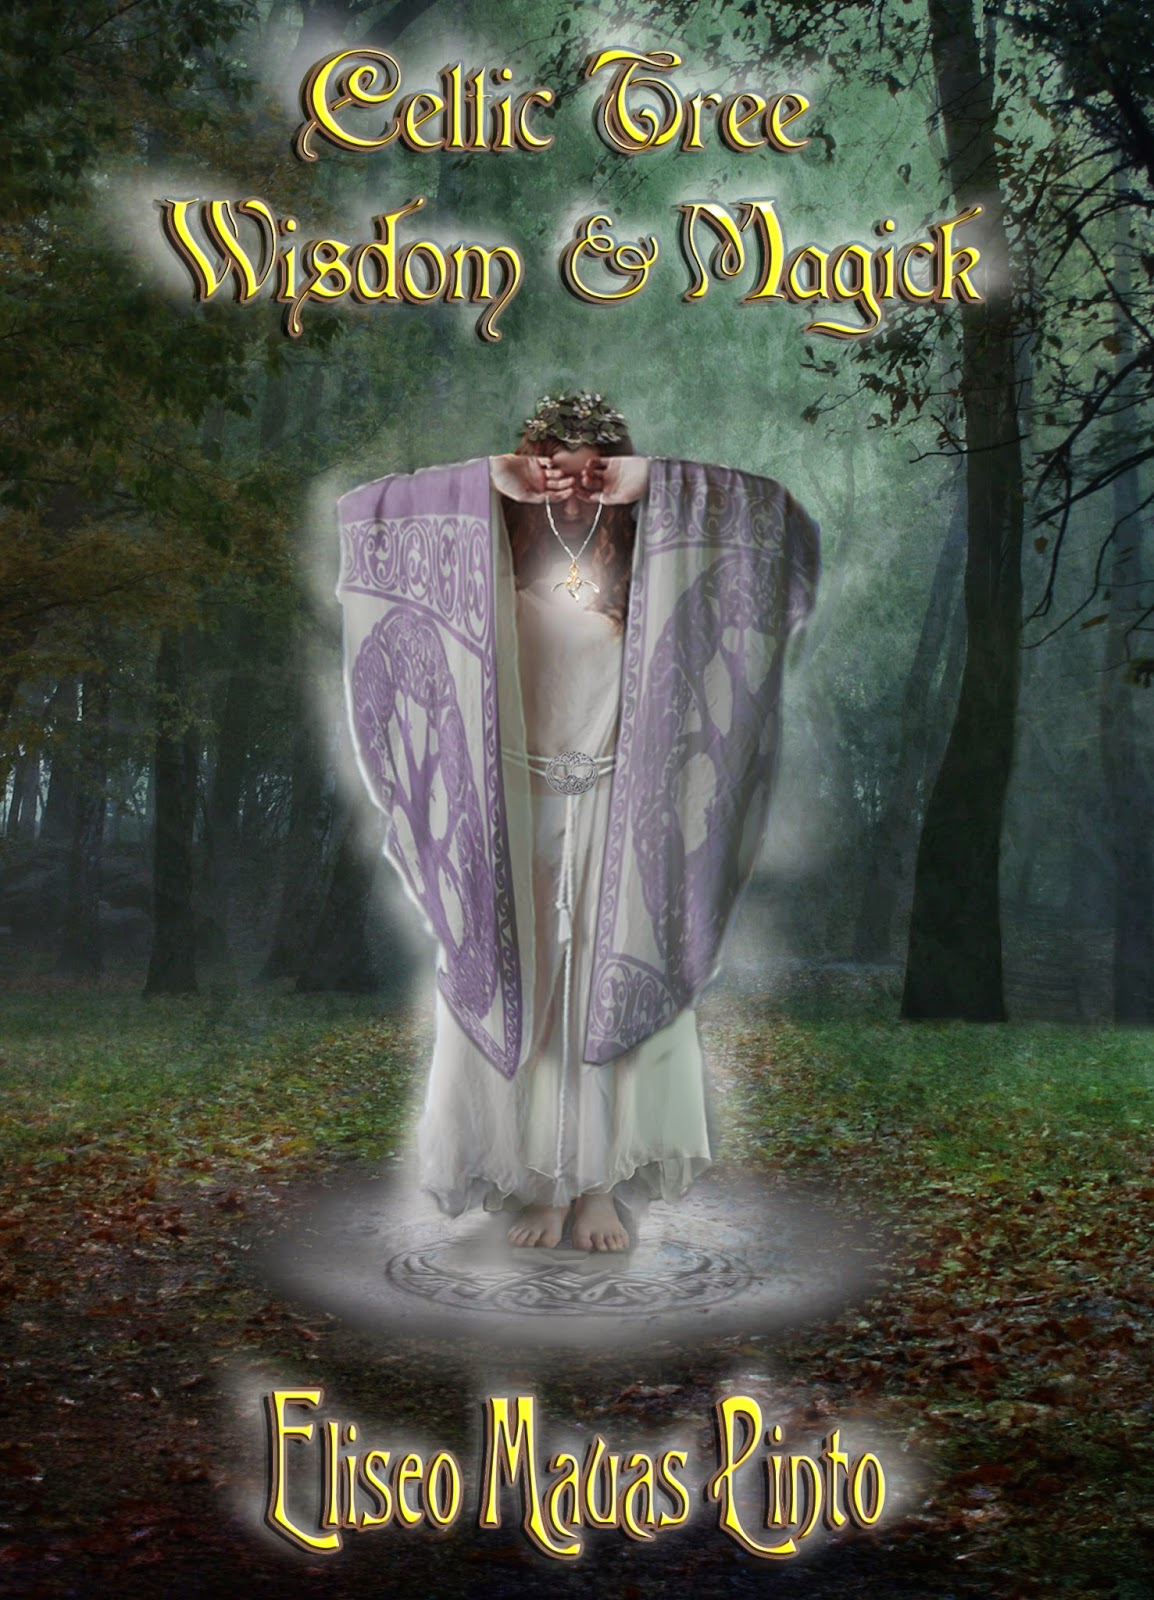 http://www.amazon.com/Celtic-Tree-Wisdom-Magick-Lore-ebook/dp/B00HG7GFDQ